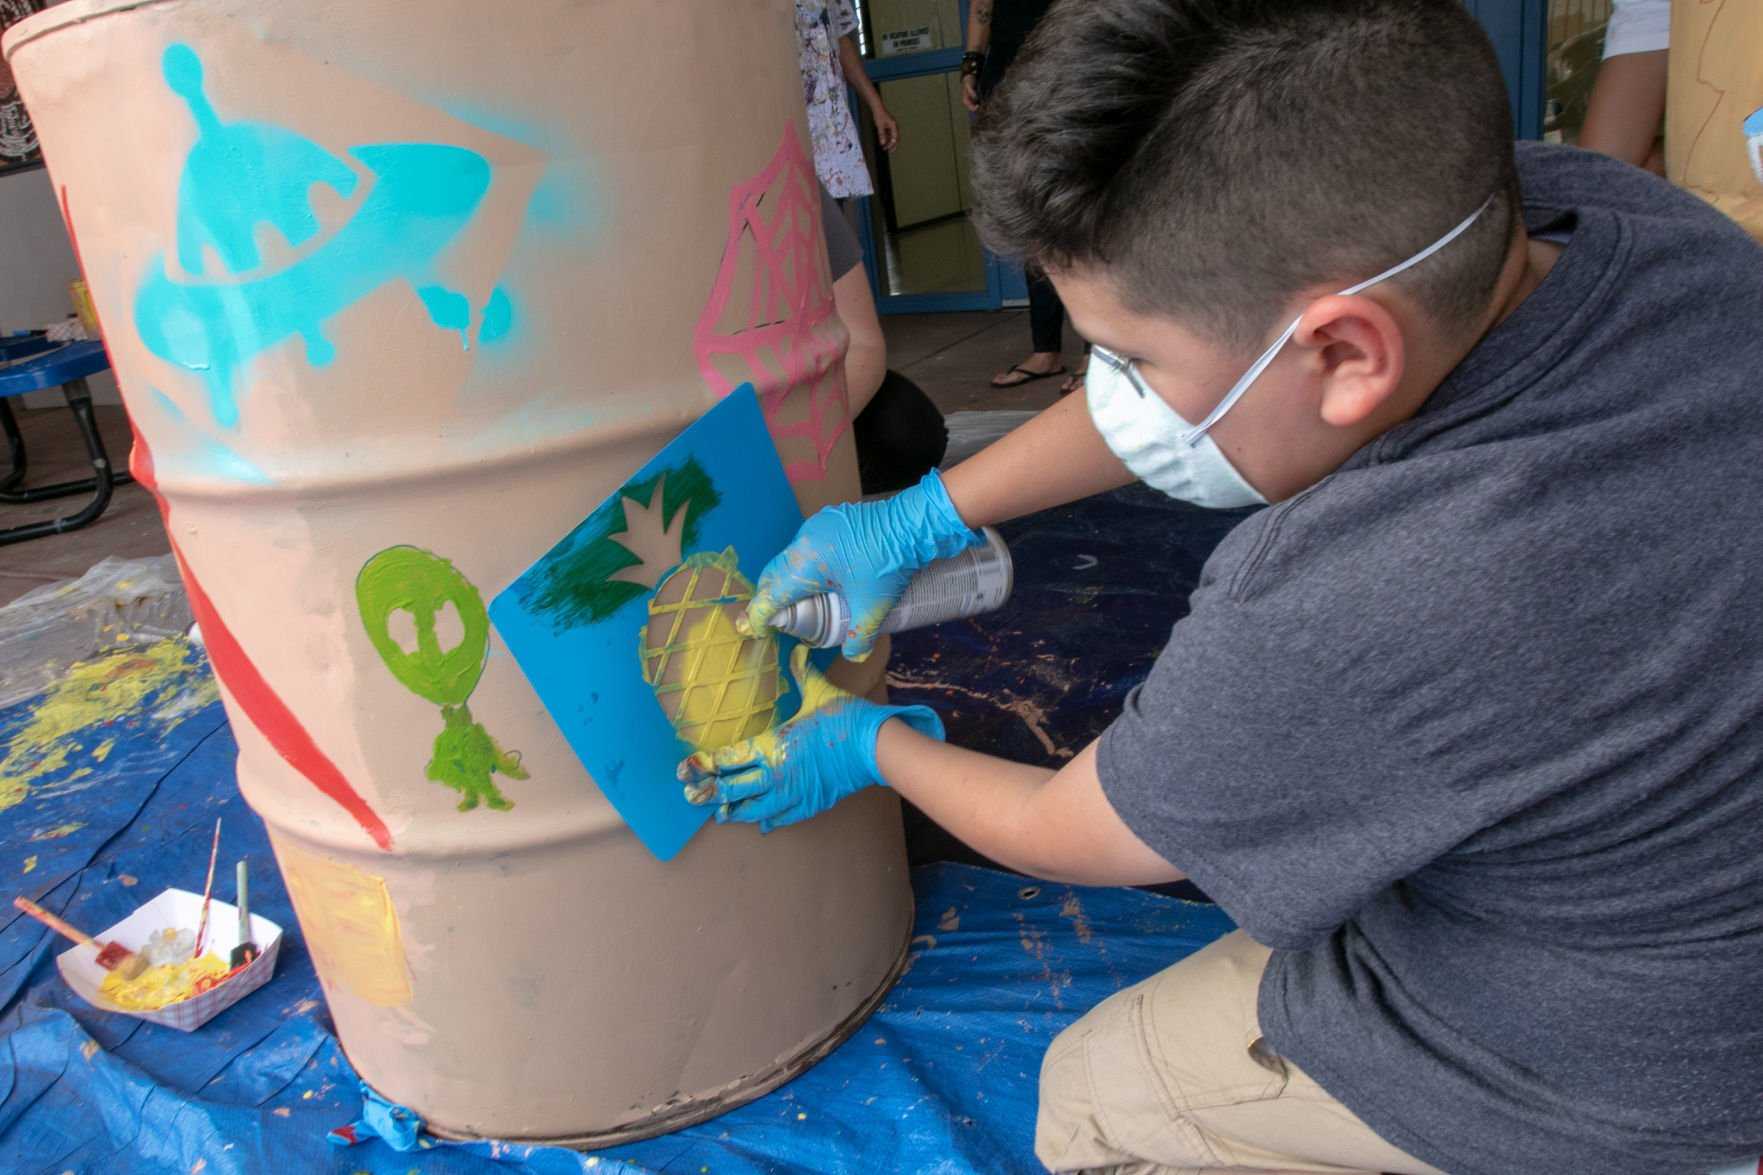 South Tucson kids fight litter with snazzy trash cans | Tucson.com